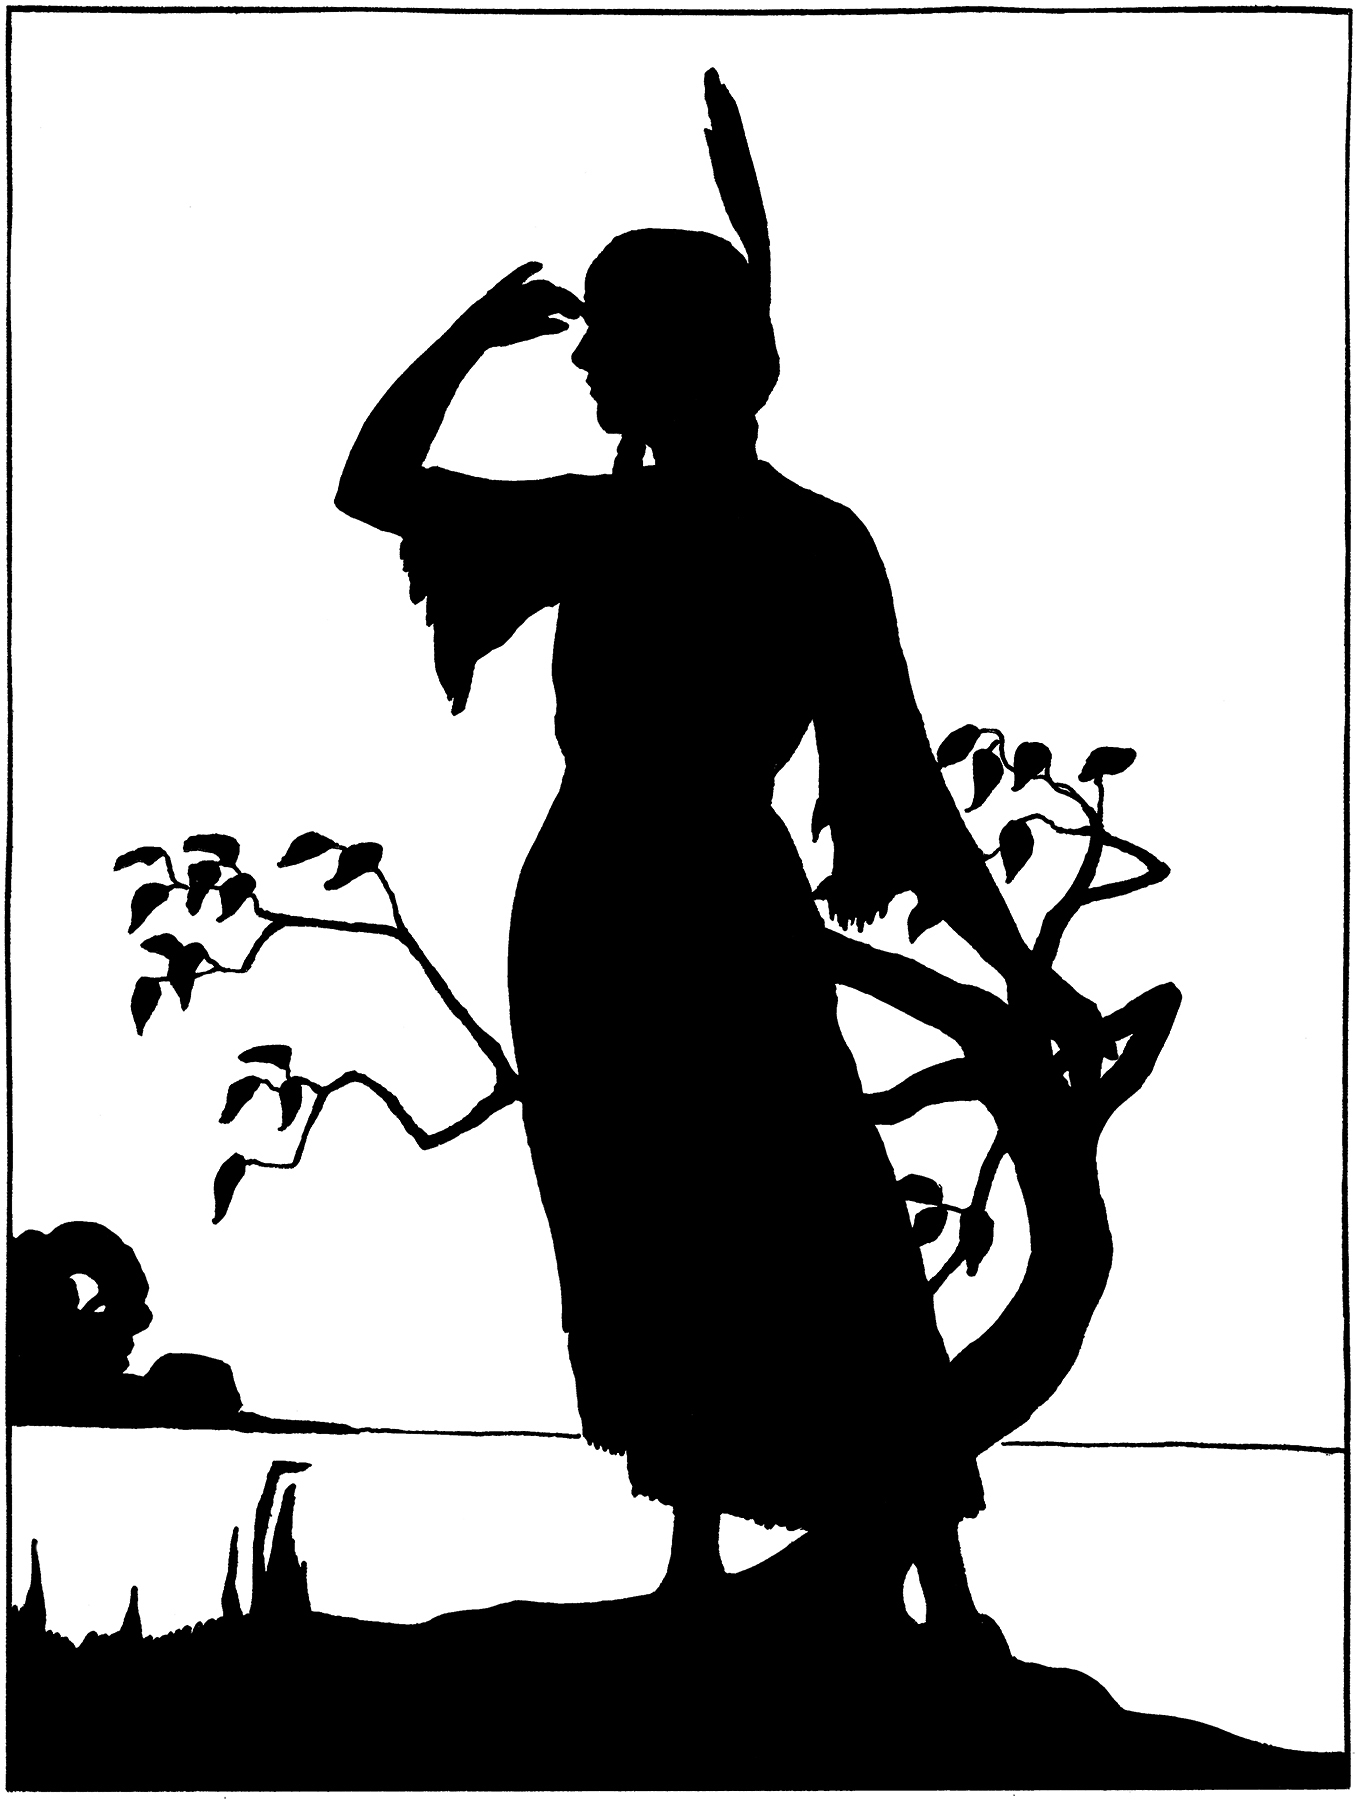 Vintage female silhouette clipart clip art library Vintage Native American Girl Image - Silhouette! - The ... clip art library